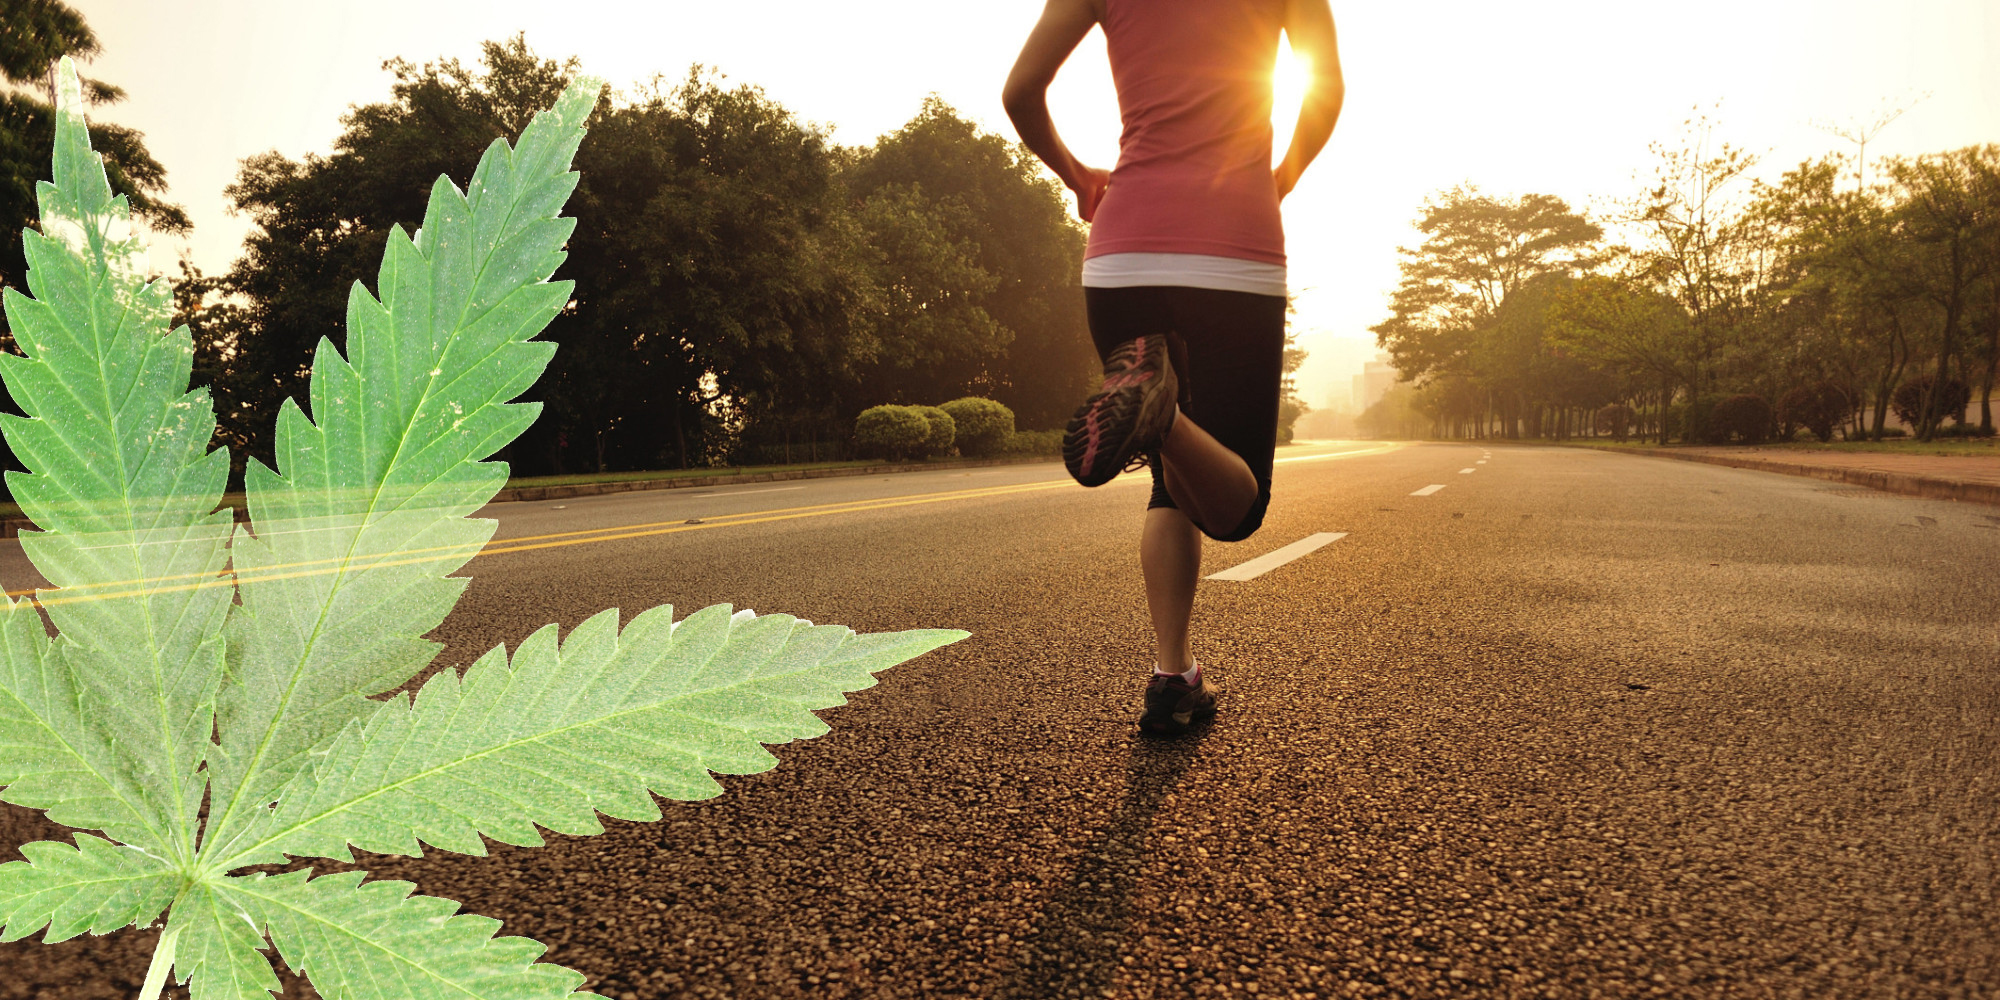 Thc cbd exercise performance